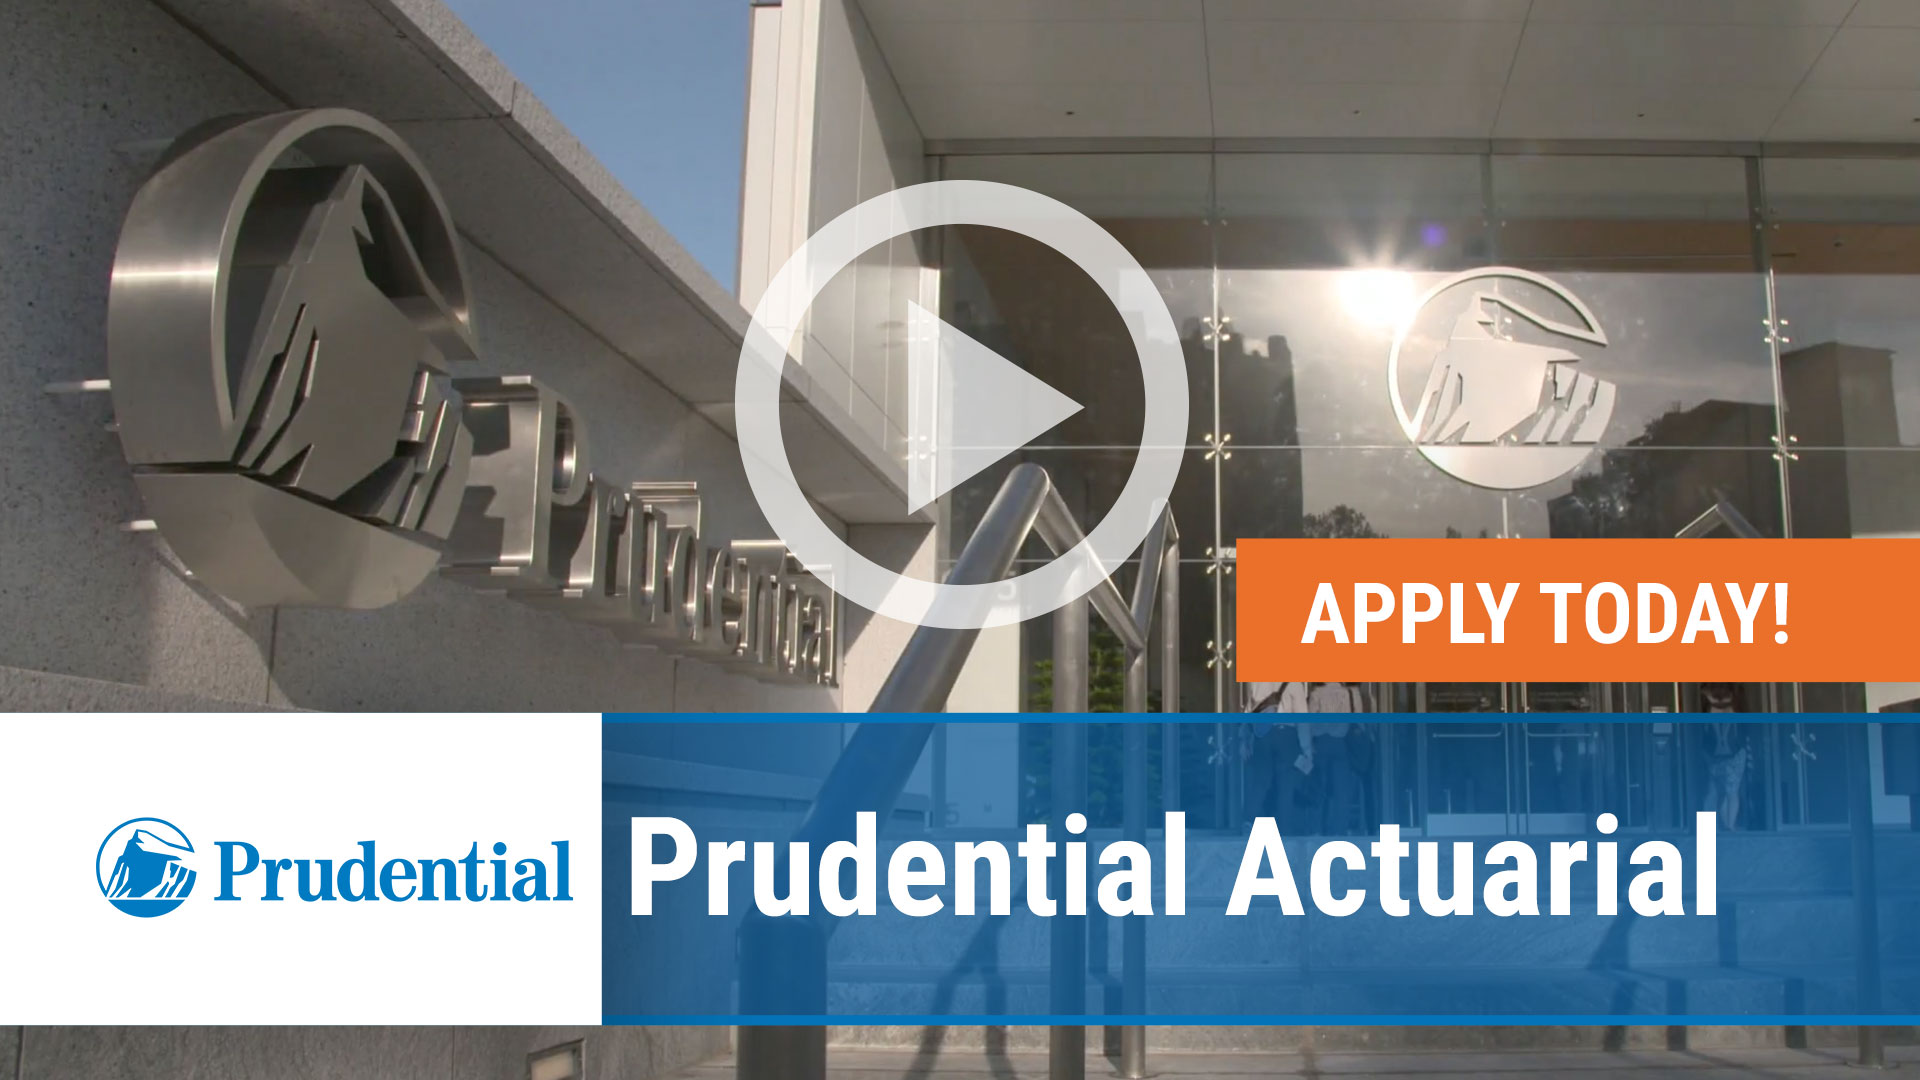 Watch our careers video for available job opening Prudential Actuarial in Newark NJ, Shelton CT, Dreshe